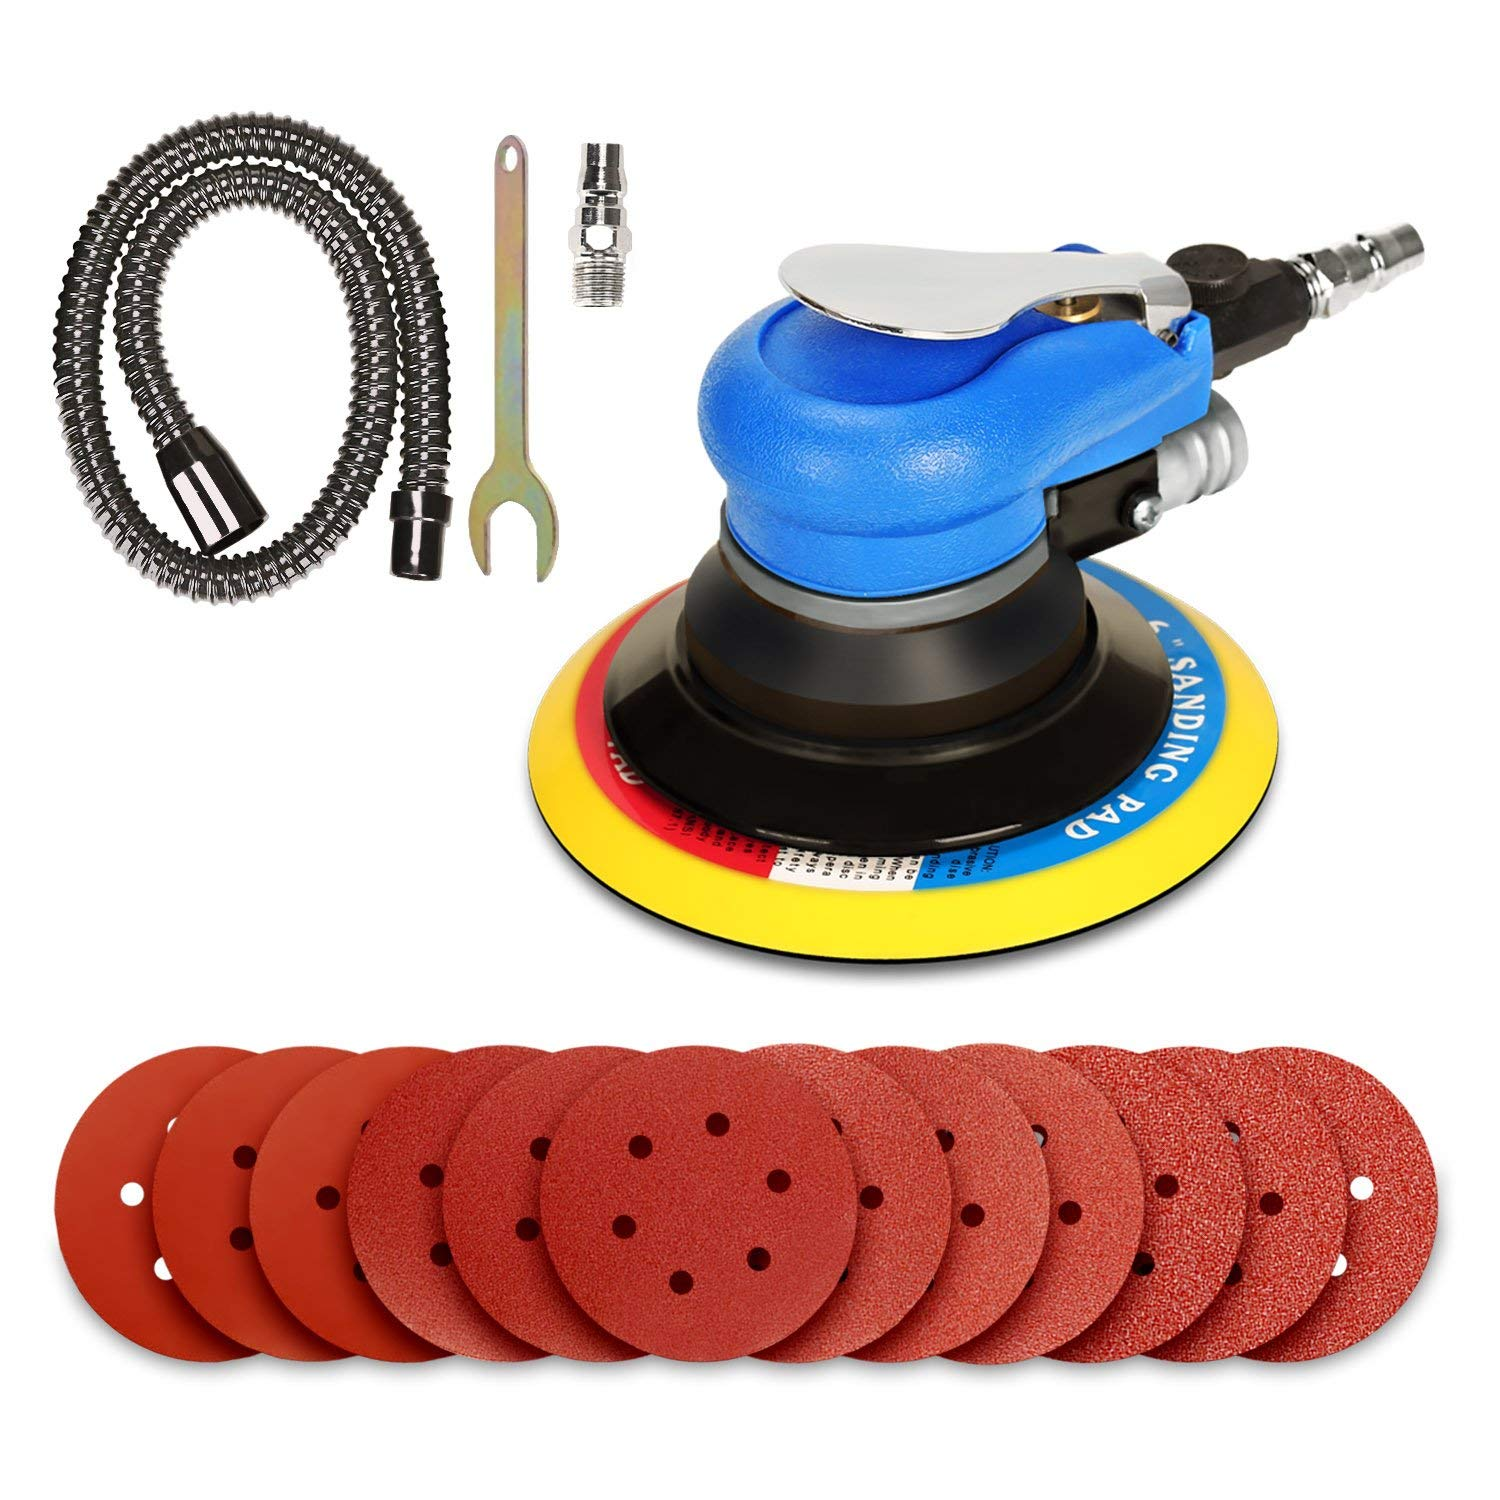 ZFE 6 Air Random Orbital Sander, Dual Action Pneumatic Sander with 12 Pcs Sanding Discs Pad 80 120 240 320 , 6 Inch Air Sander Polisher for Car and Metal